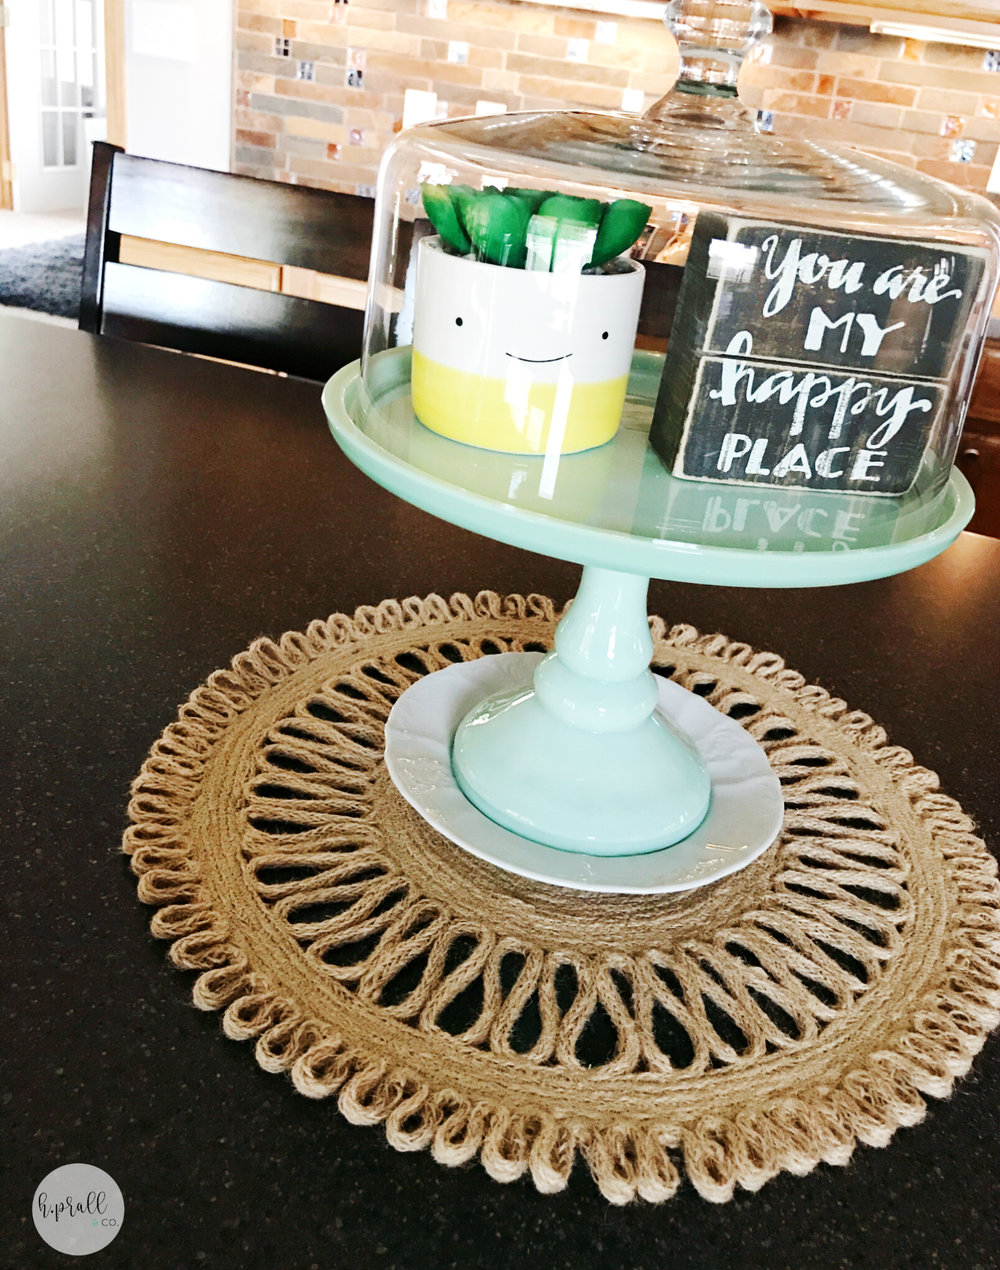 Using a cakestand as a simple centerpiece by H.Prall & Co.